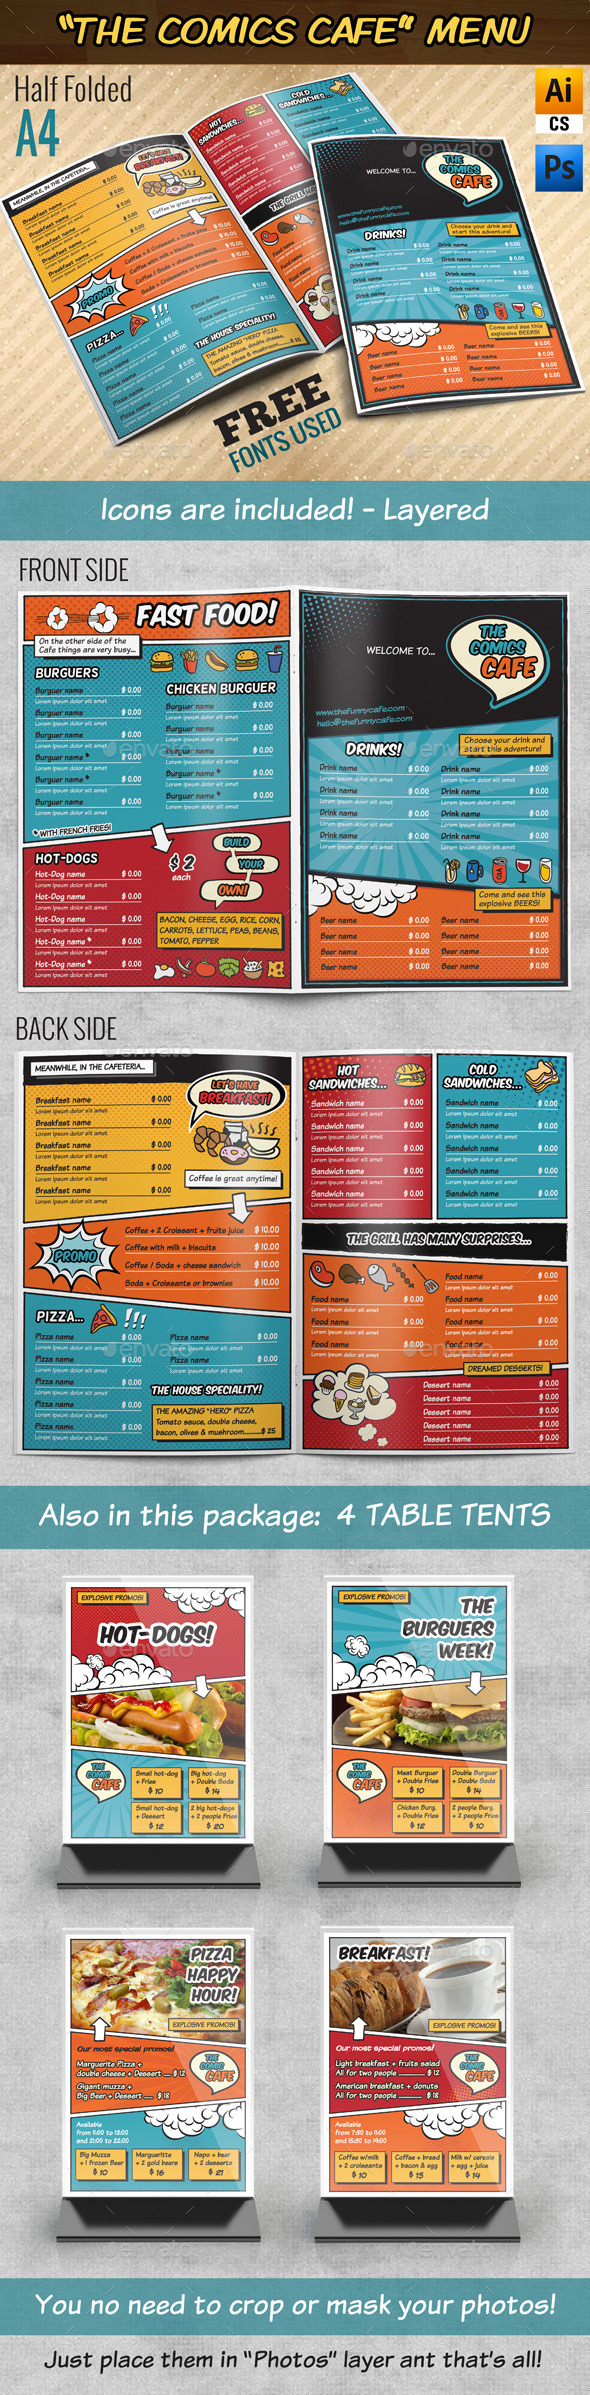 GraphicRiver The Comics Cafe Menu A4 Half folded 9214419